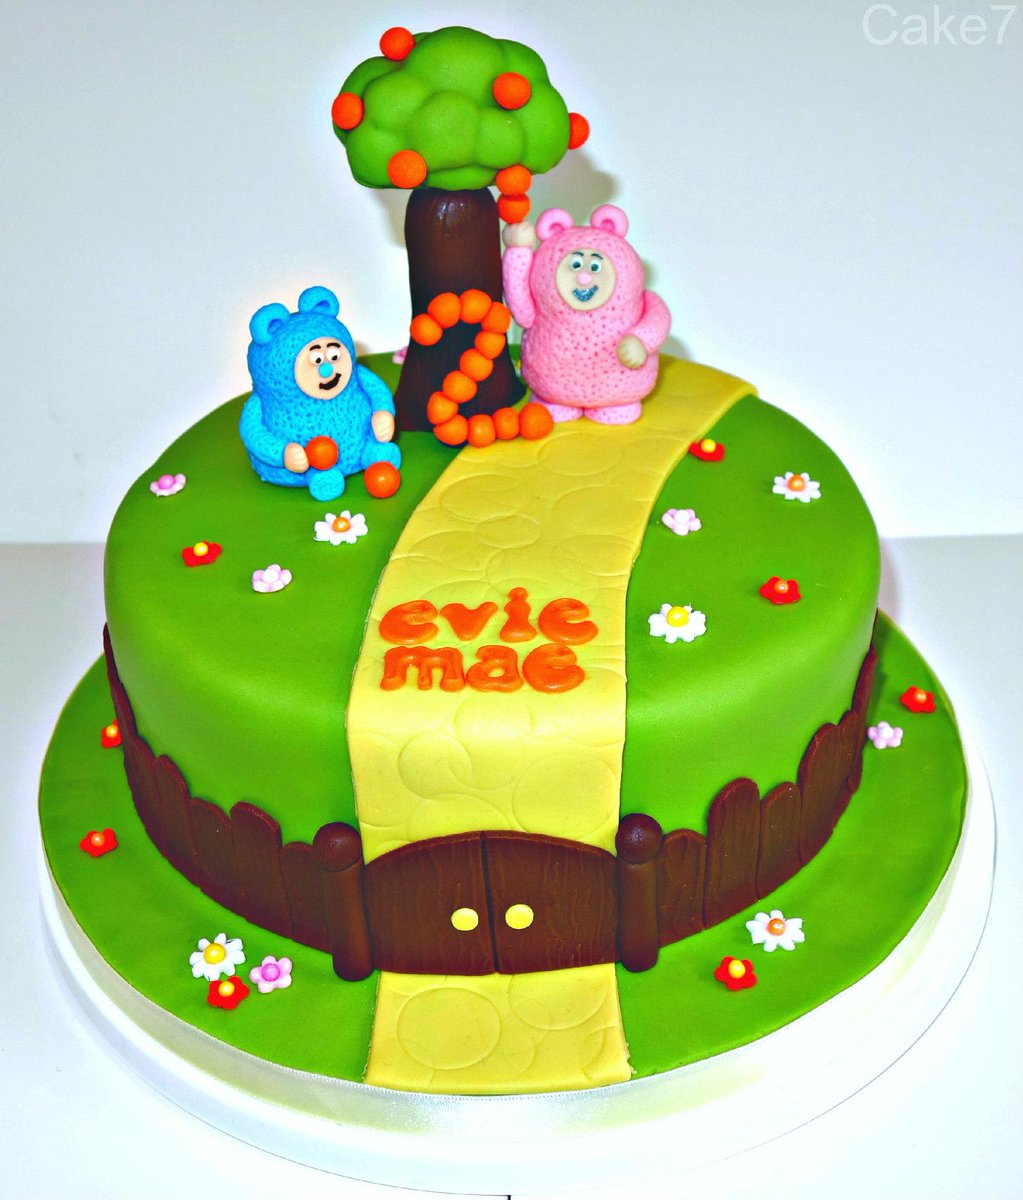 Cake7 On Twitter A Billy Bam Bam From Babytv Themed Cake